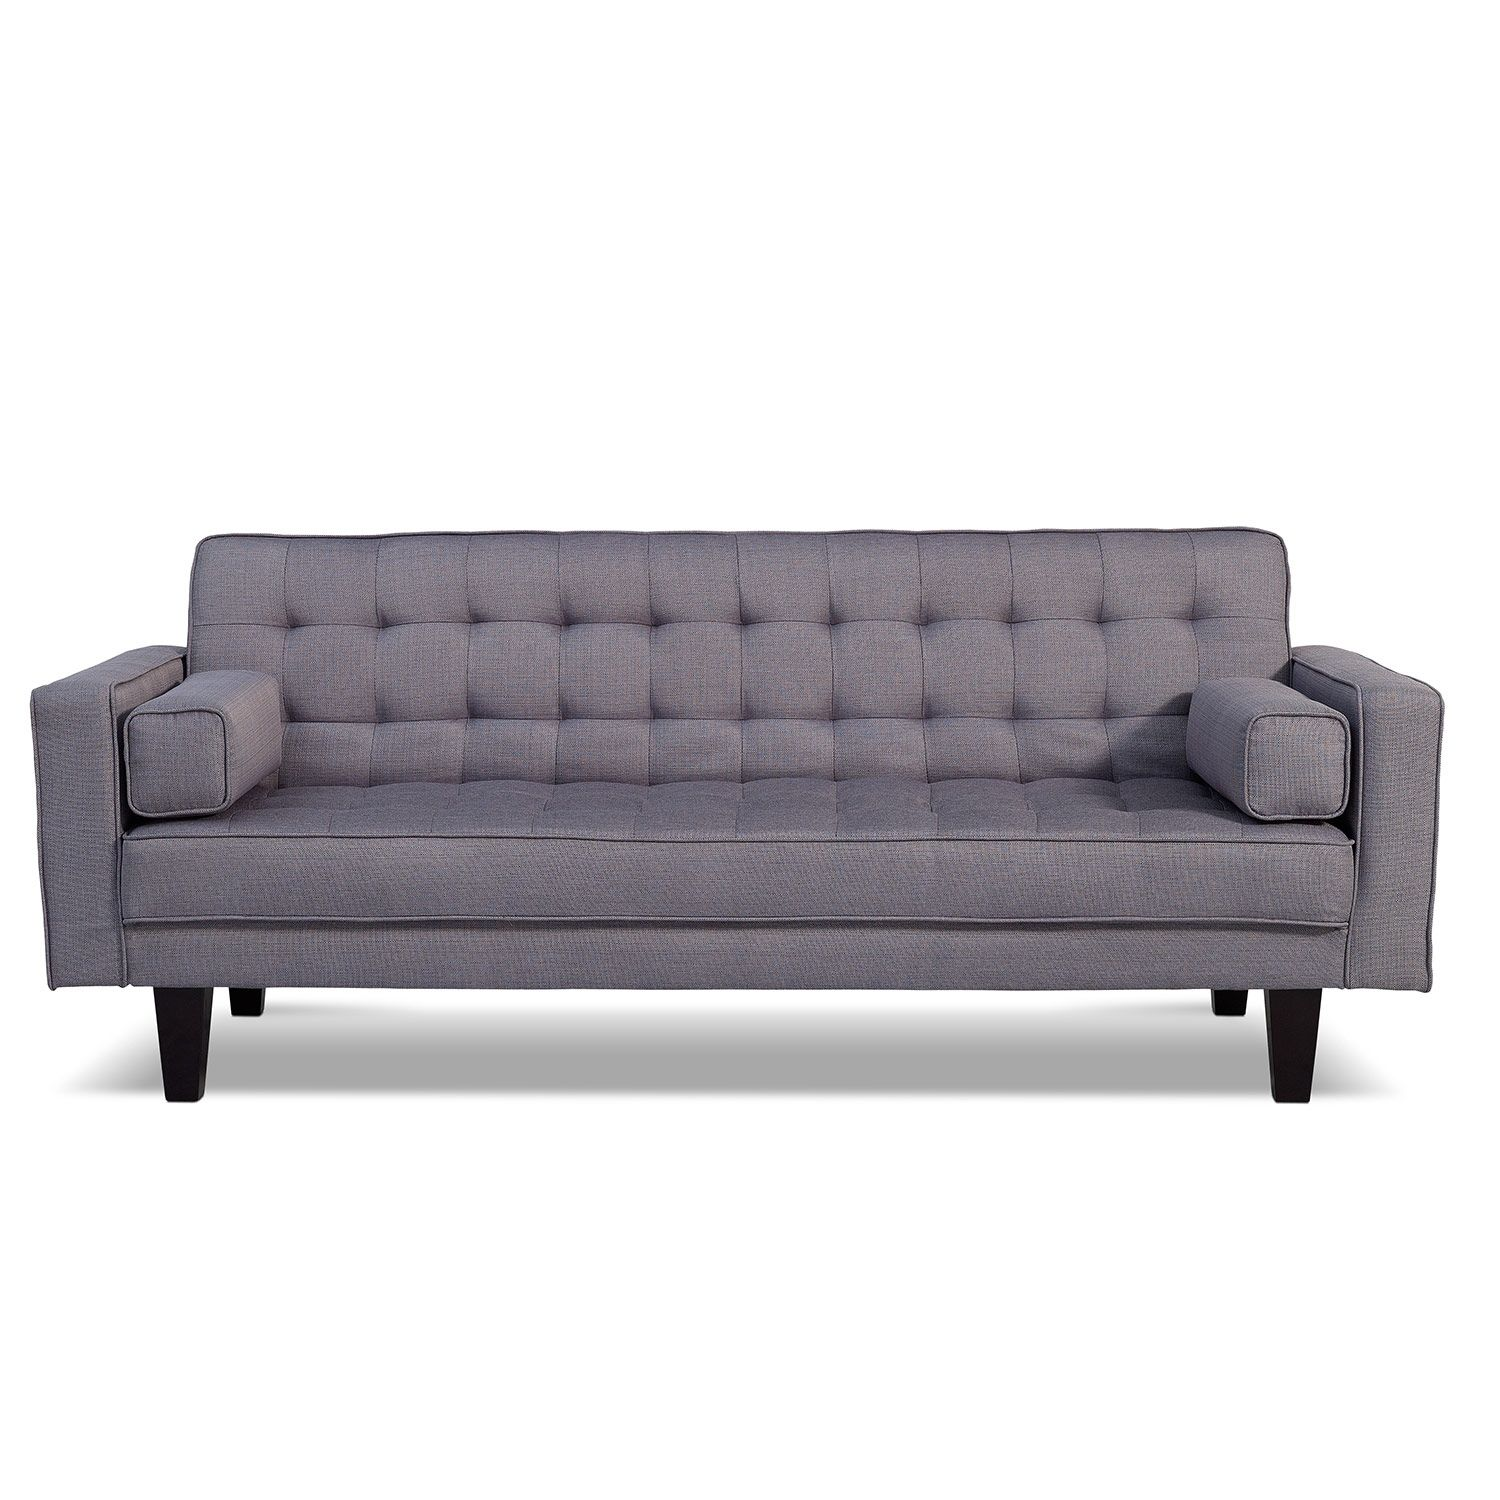 value city does have it in gray bianca futon sofa bed